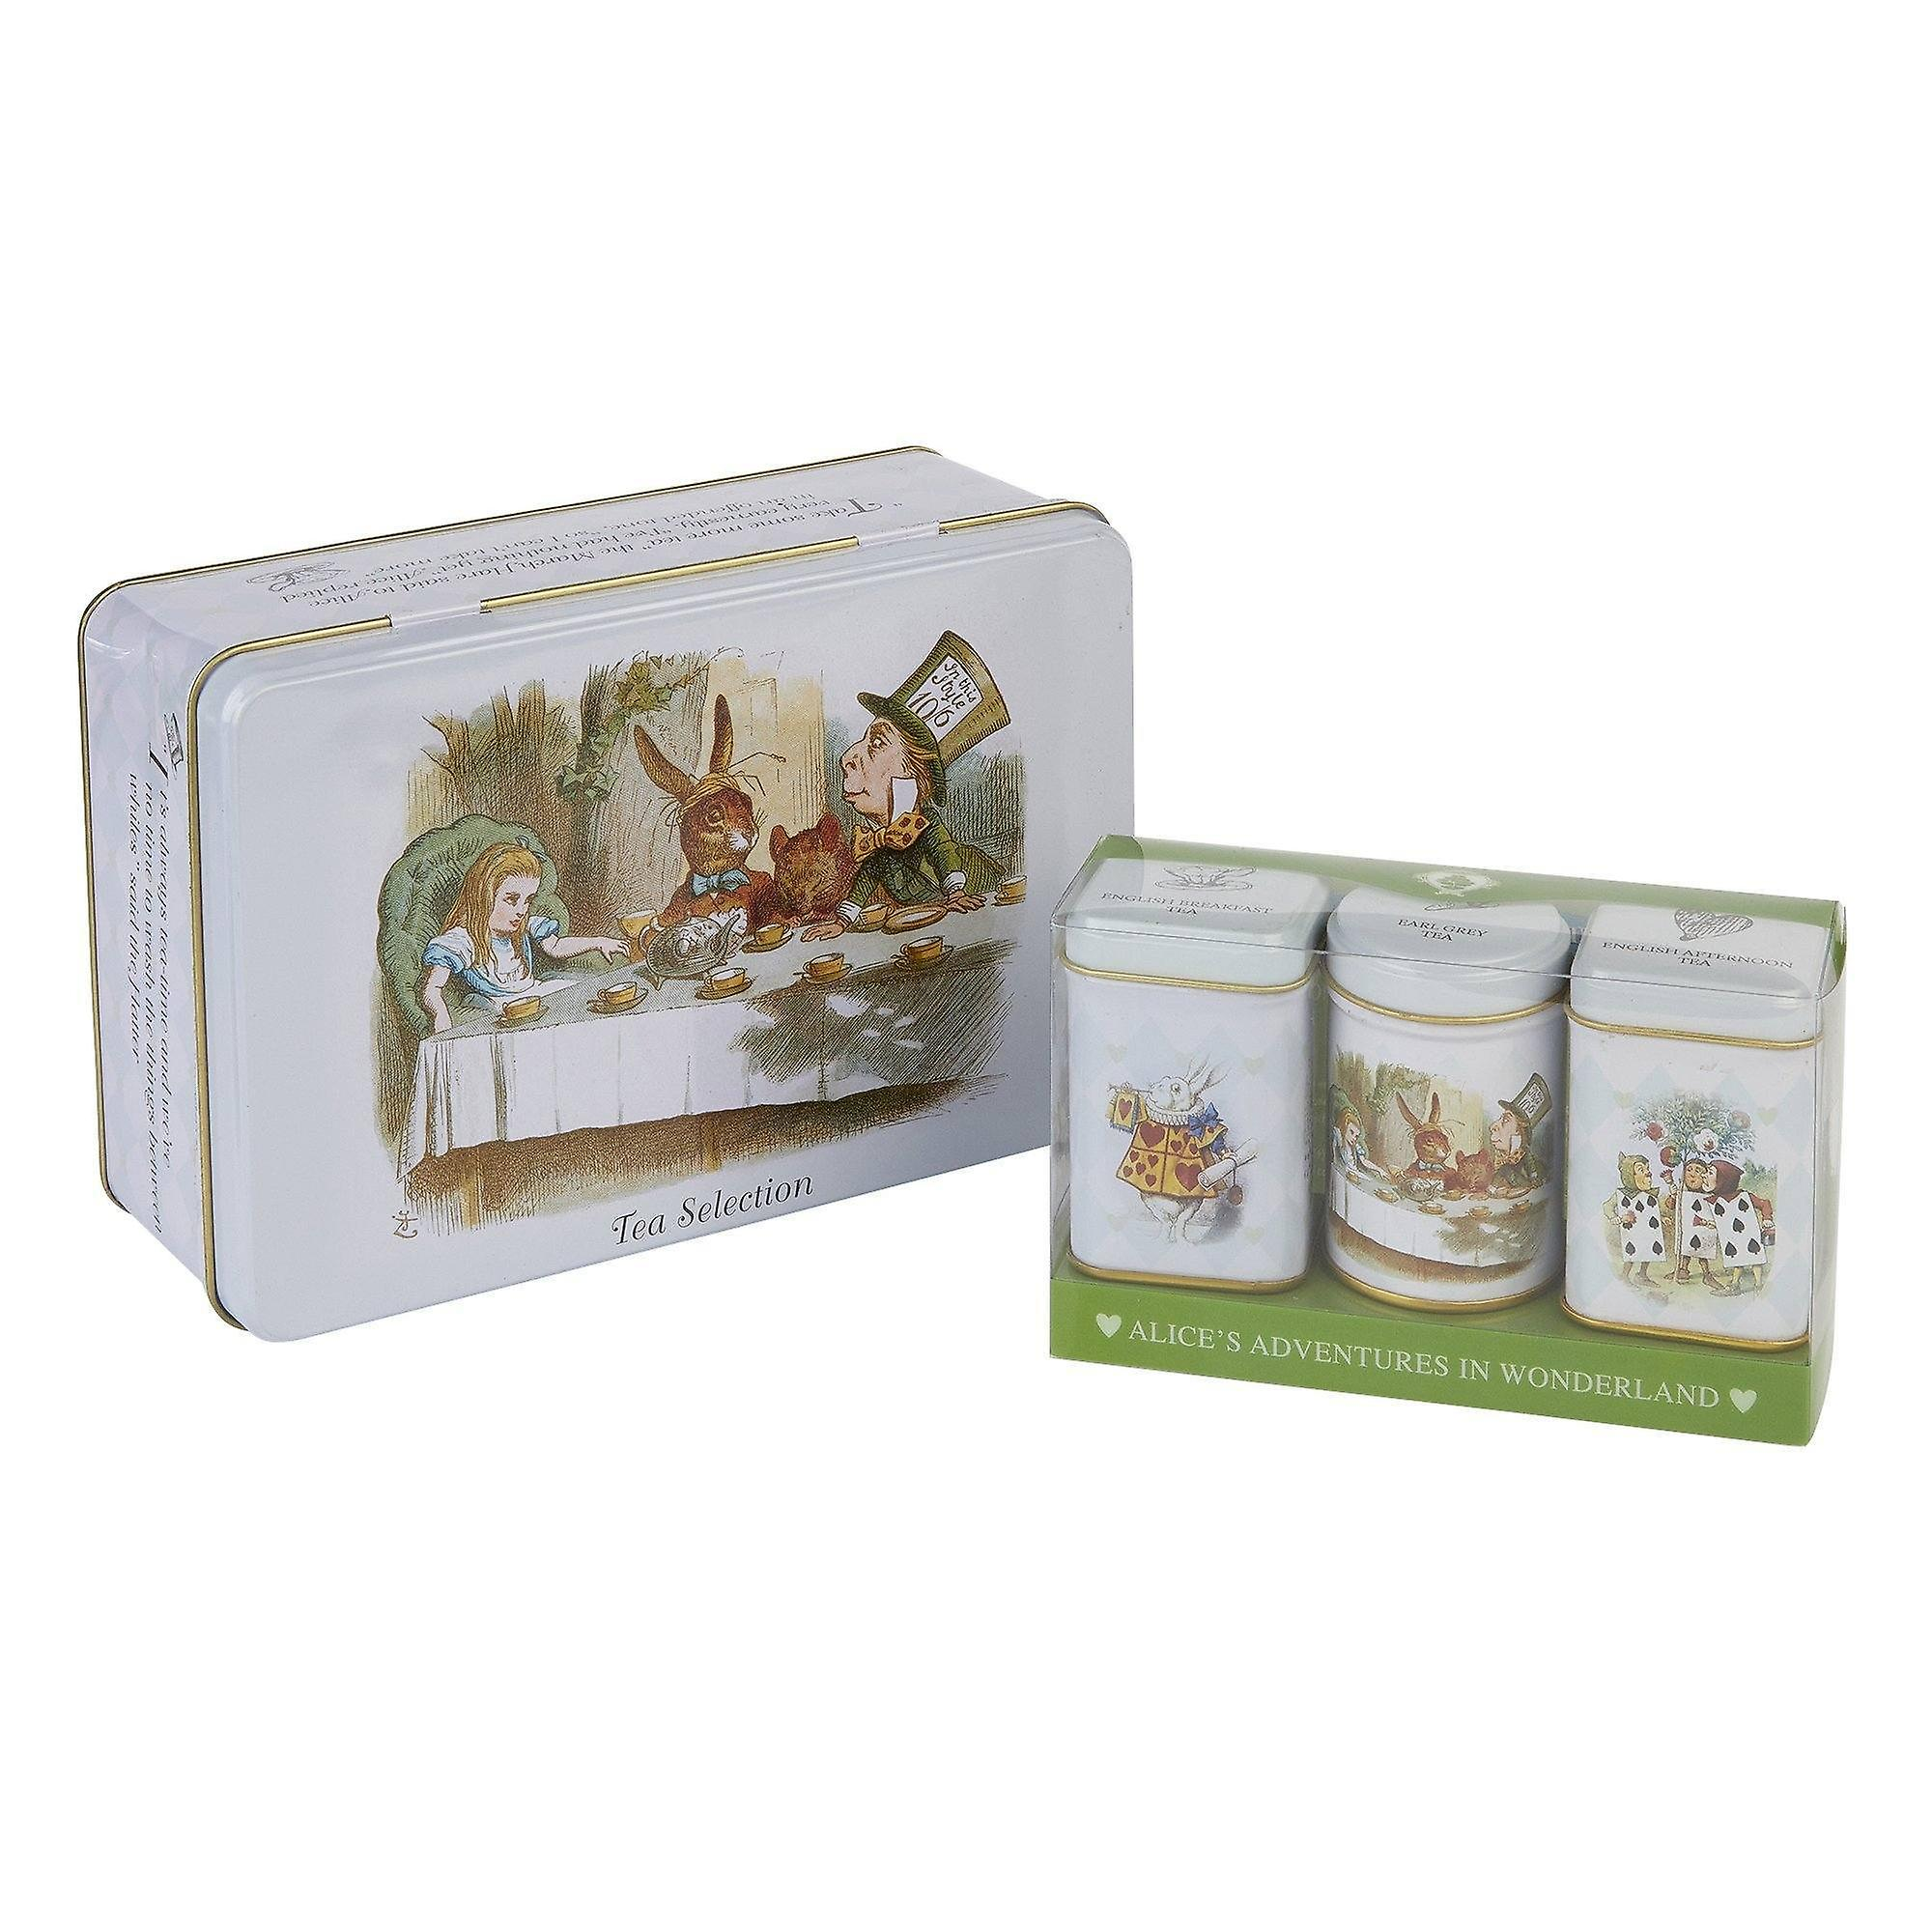 Mad hatters english tea party selection